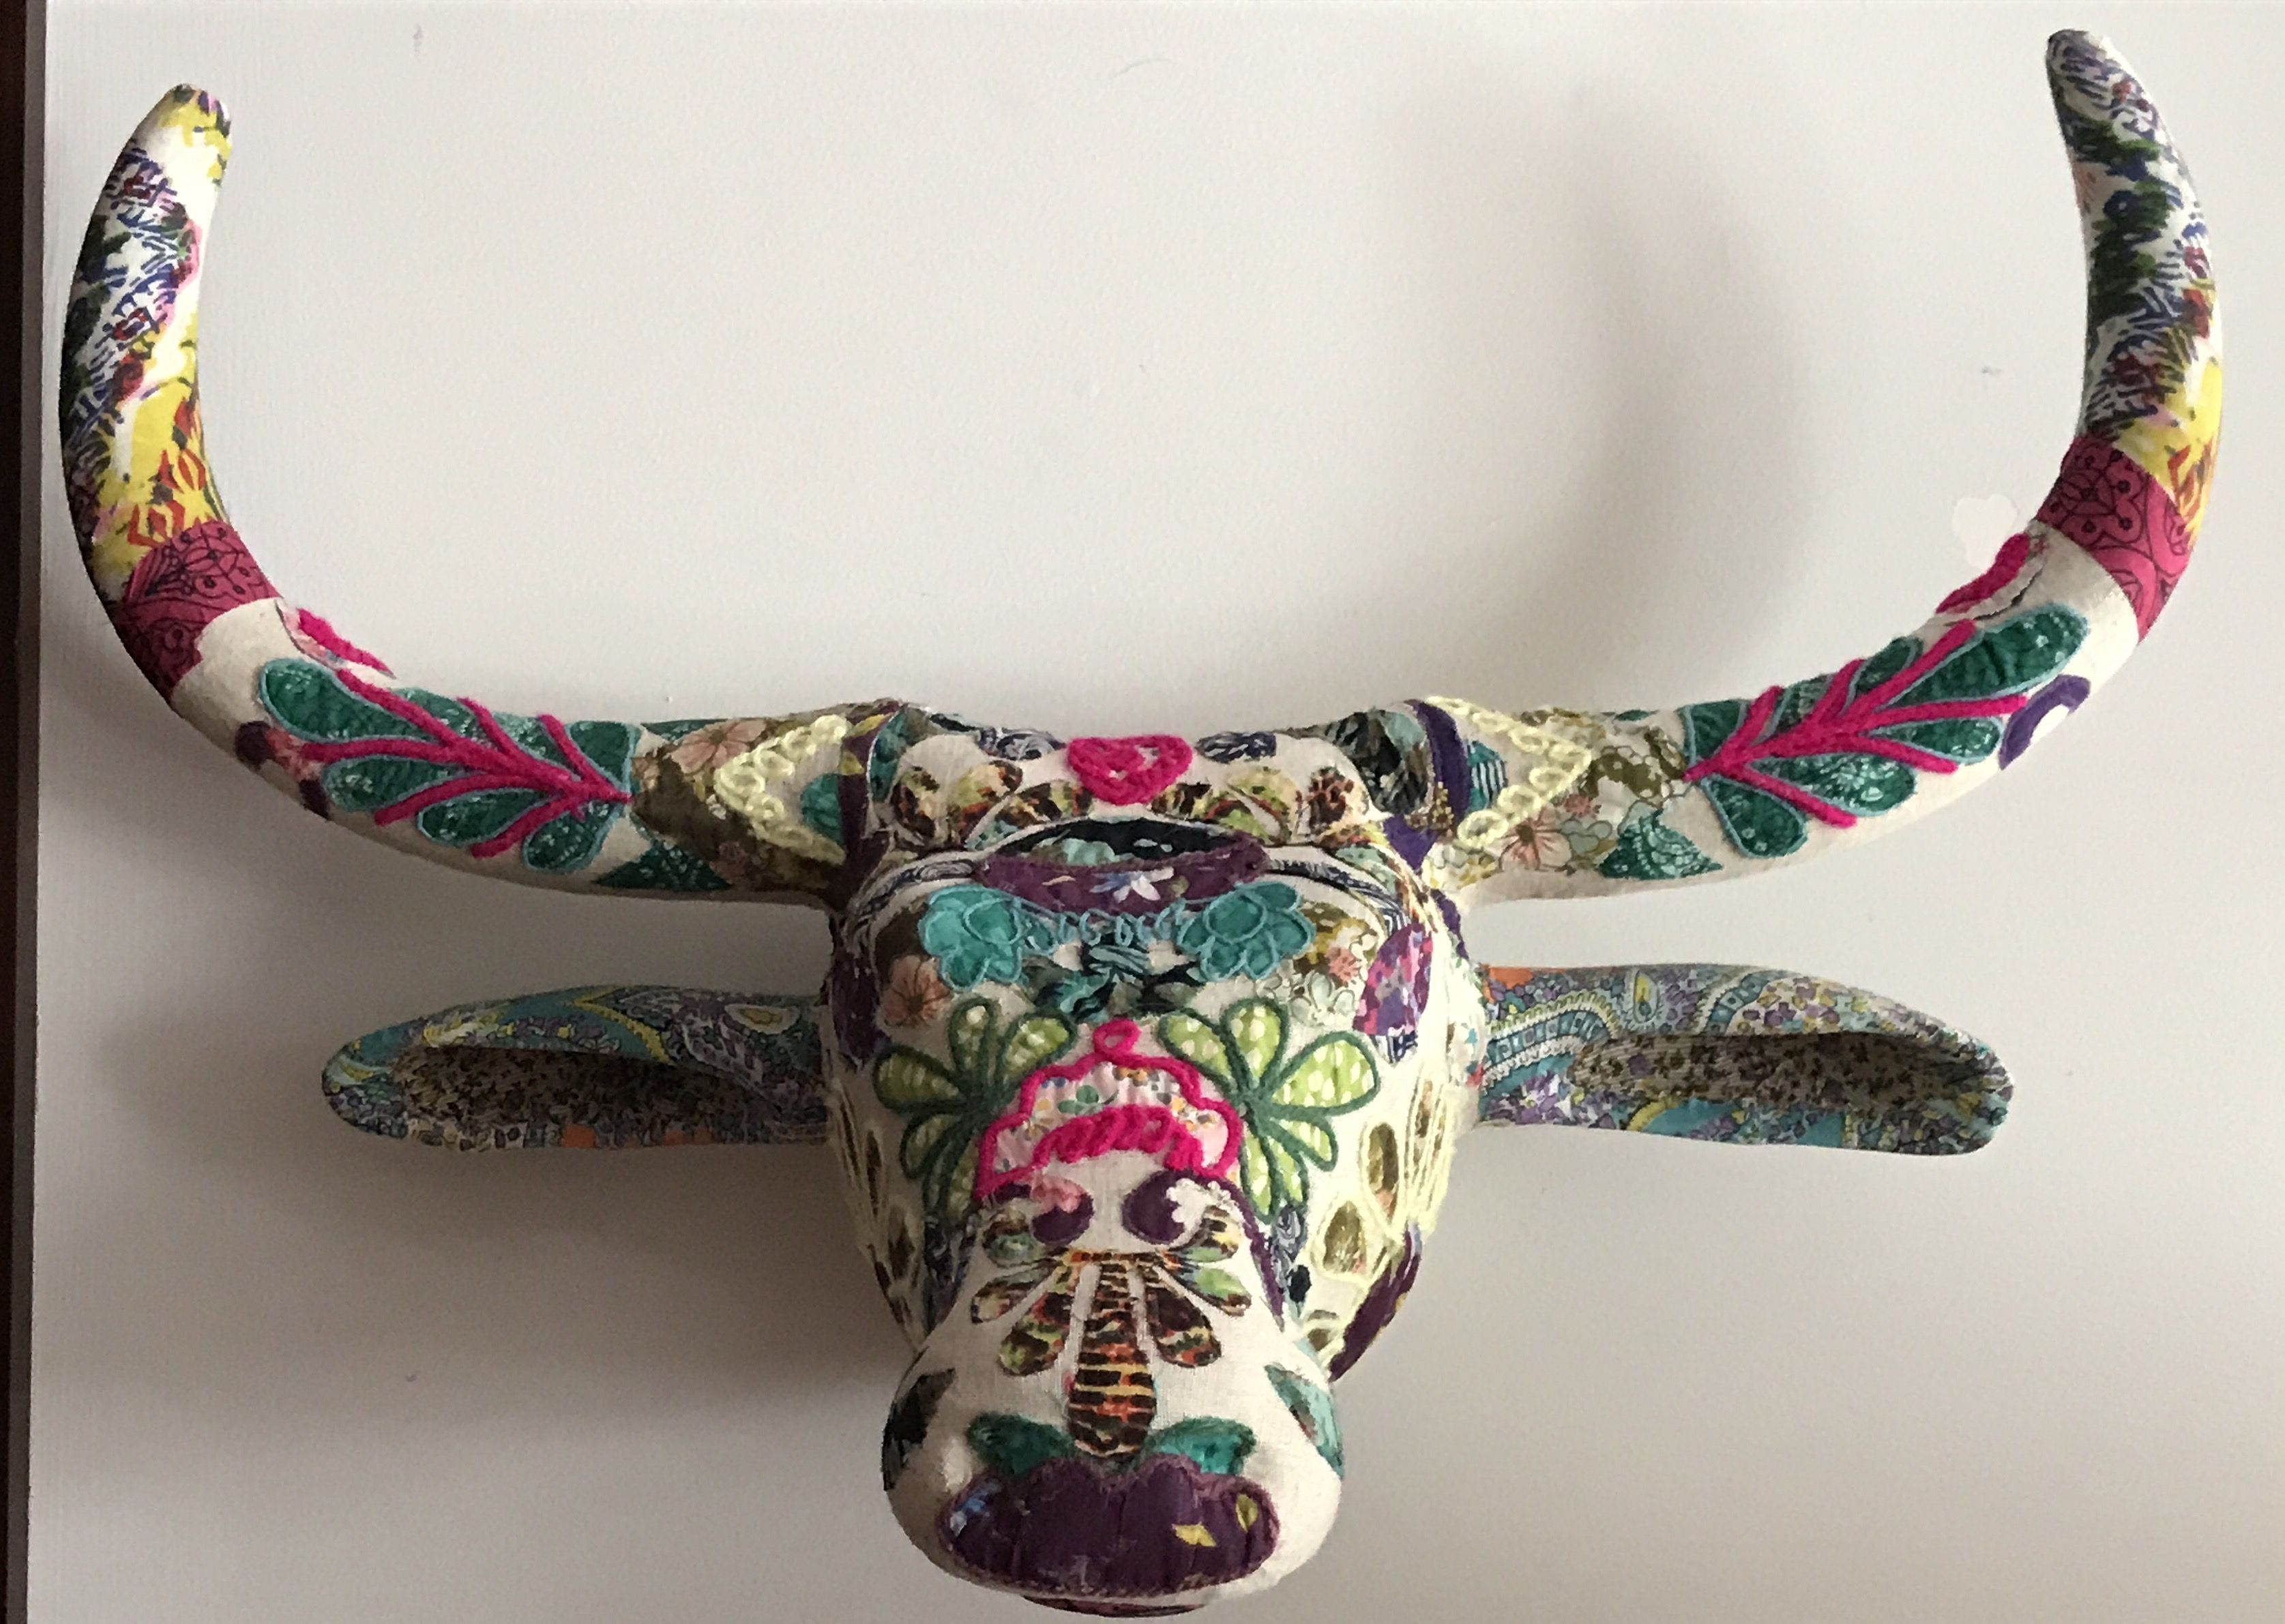 Bull head wall mount embroidered fabric Pandora charm